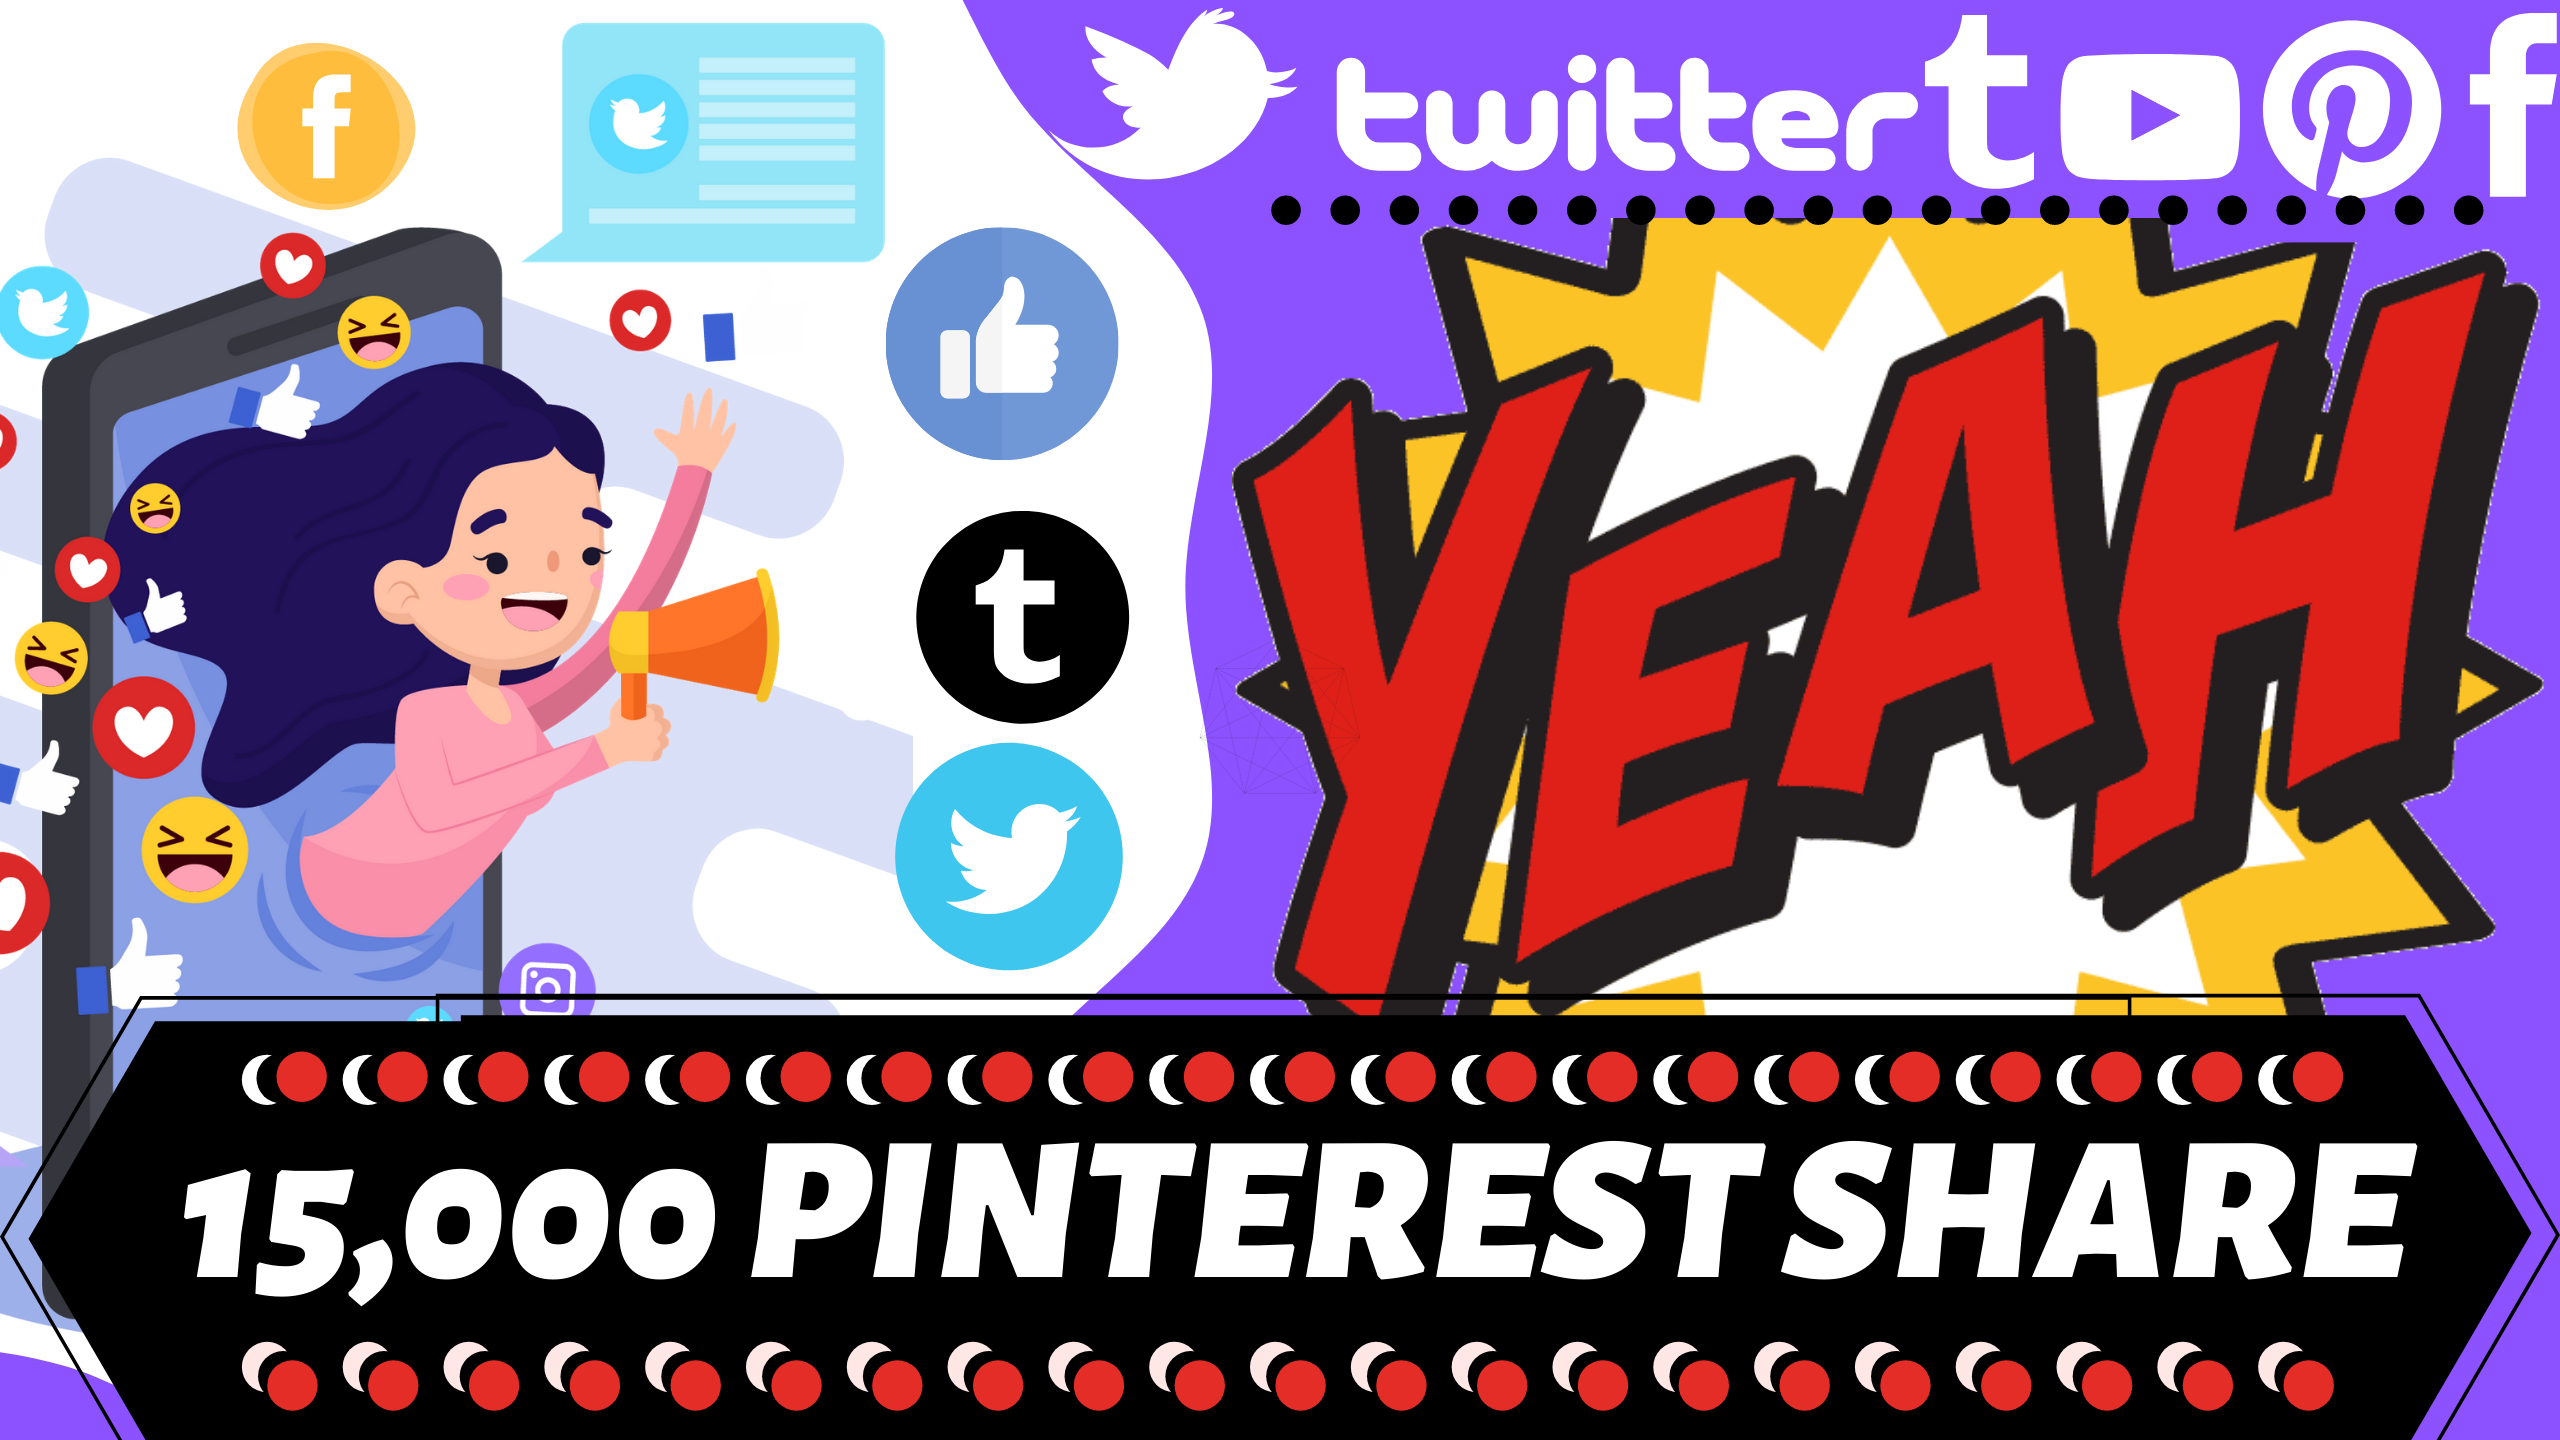 15,000 LifeTime pinterest shares I Boost Your Ranking Now I Best Social Signals service